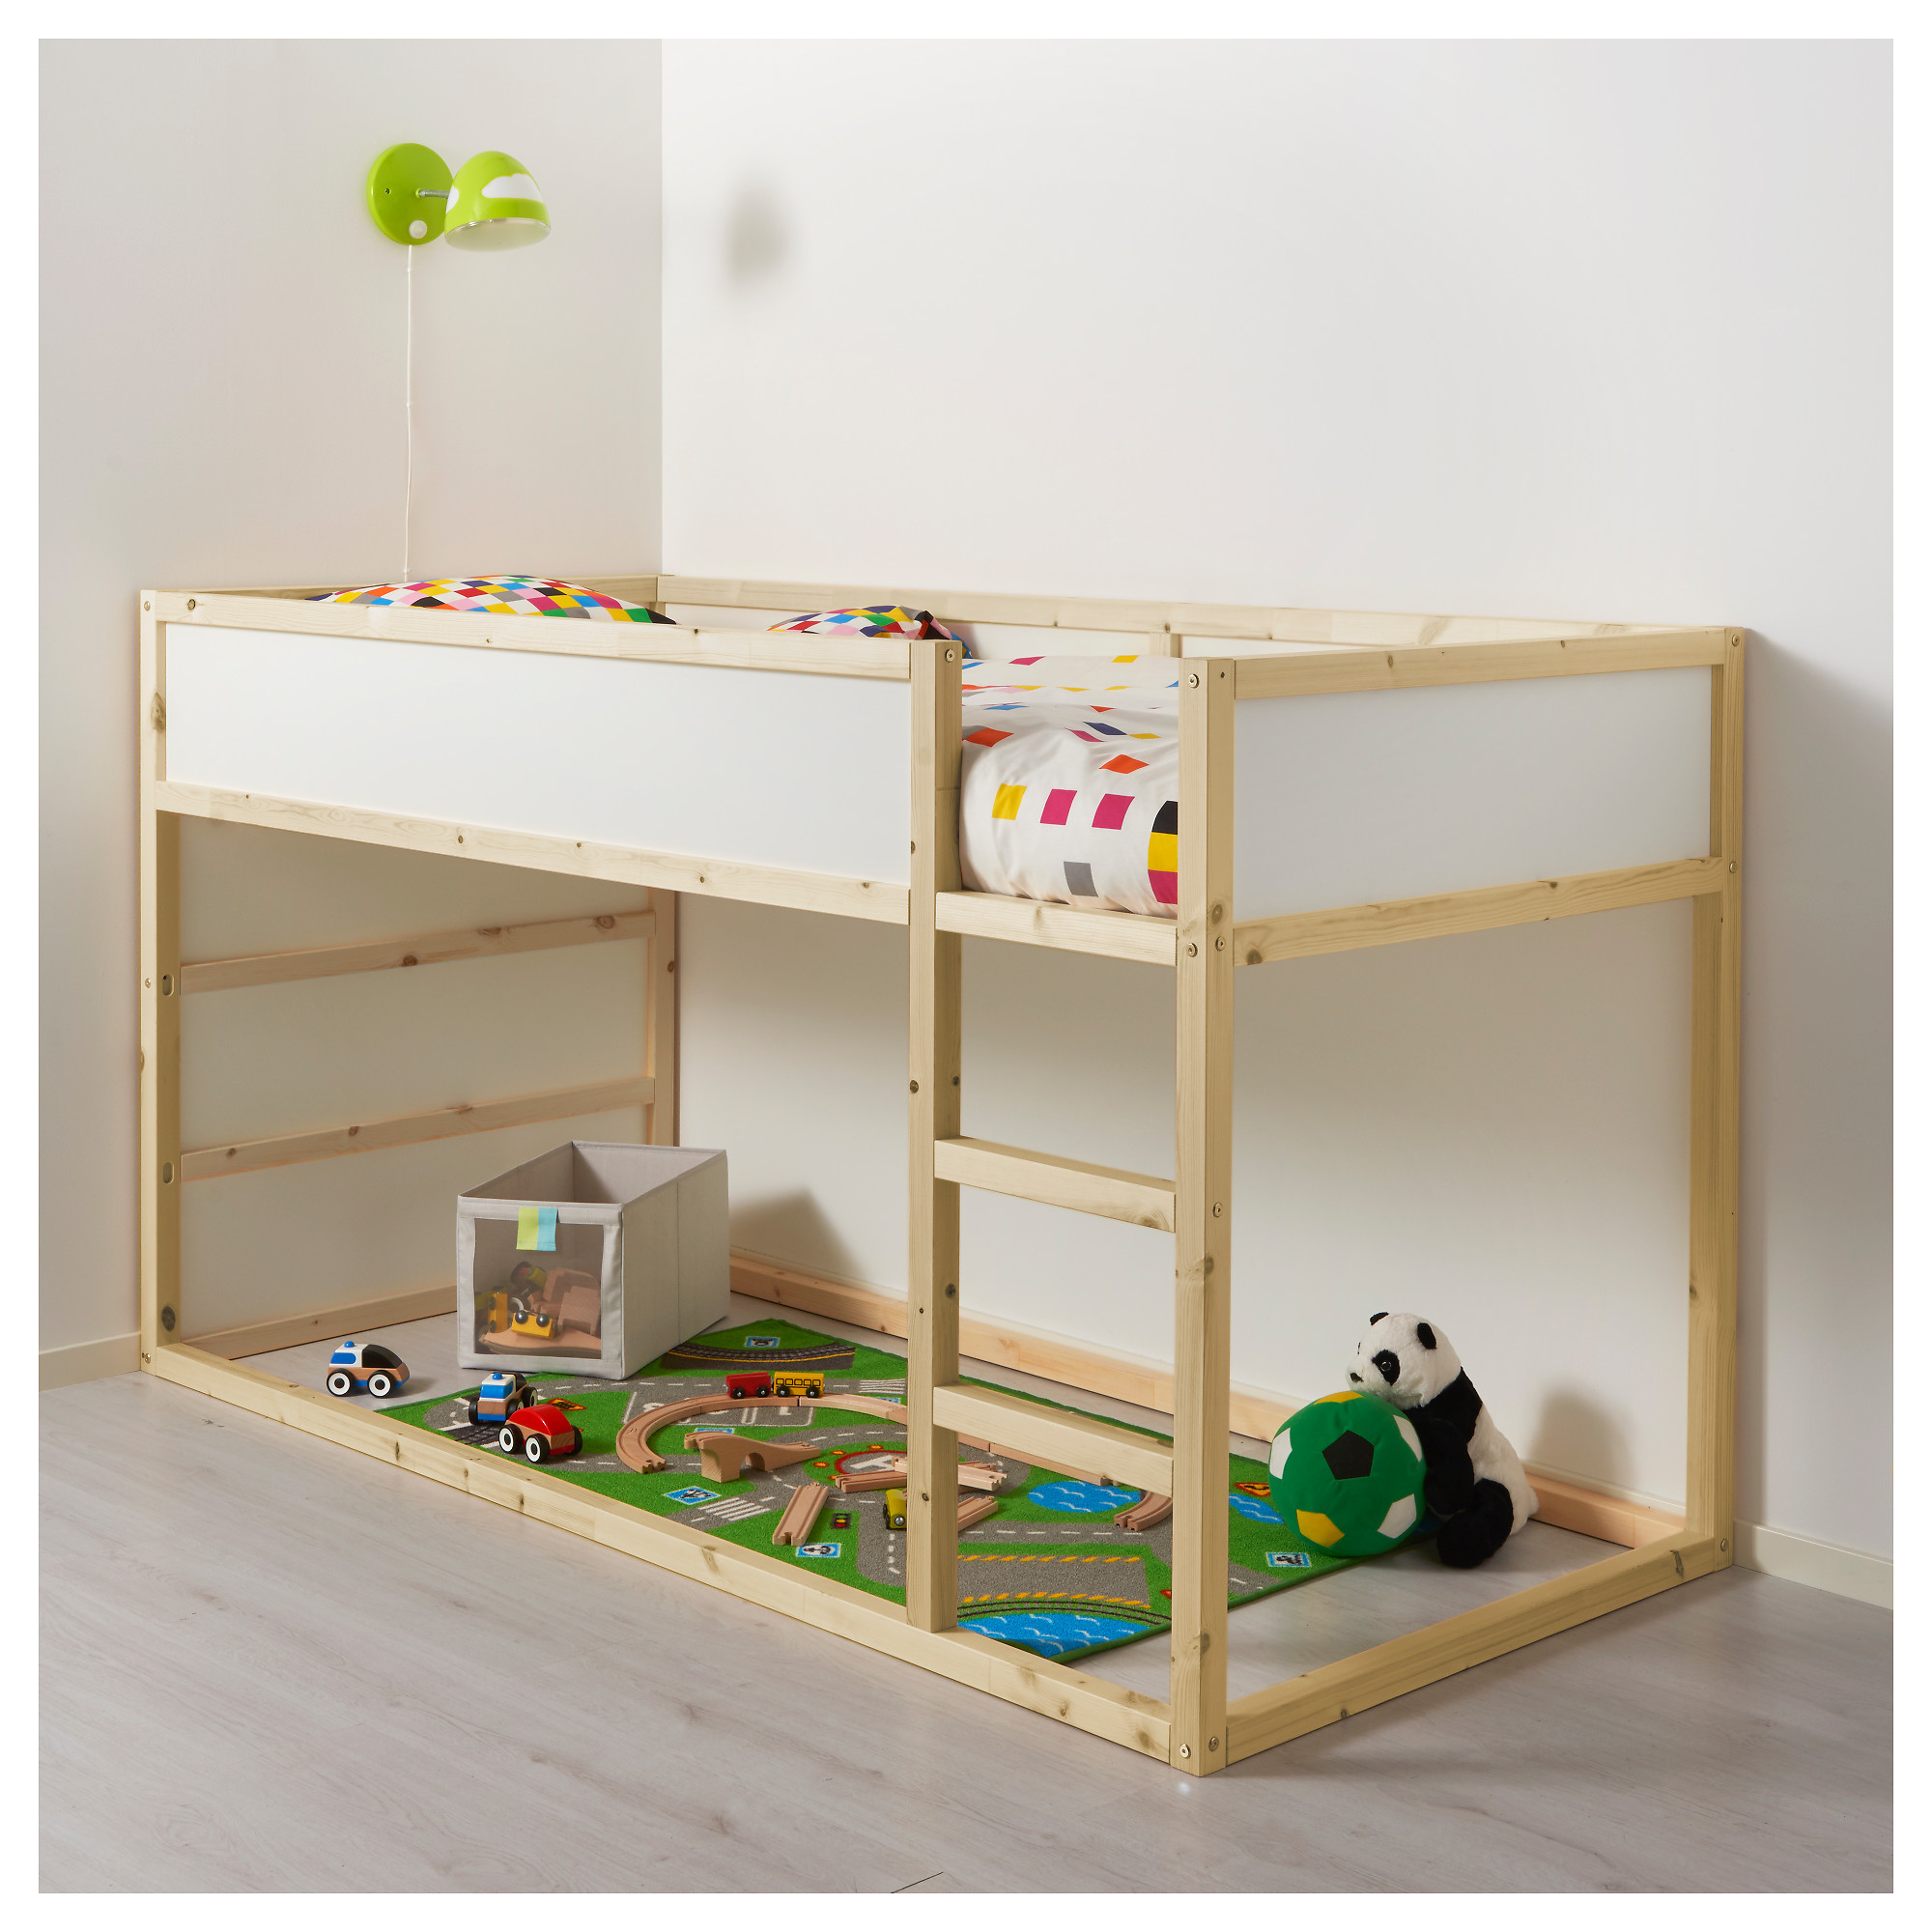 Ikea kura images galleries with a bite - Litera ikea ninos ...